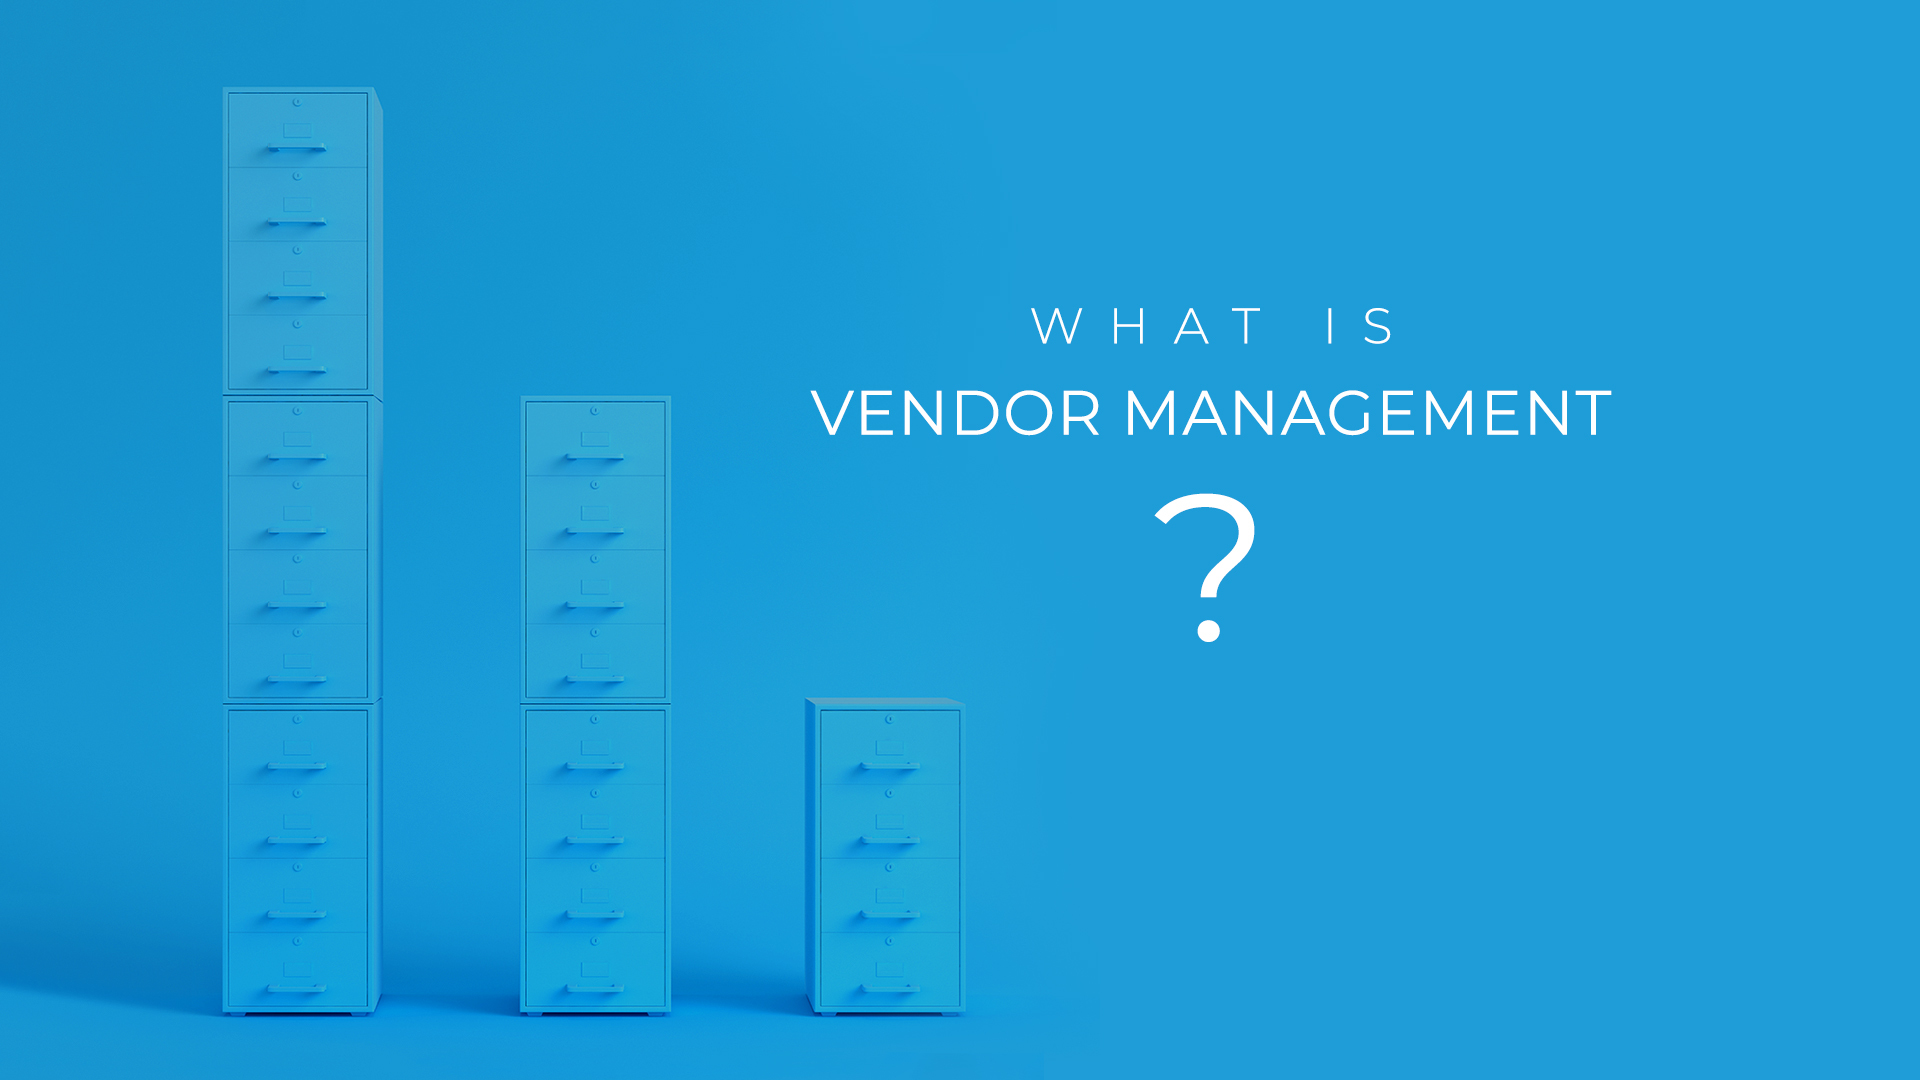 What Is Vendor Management?